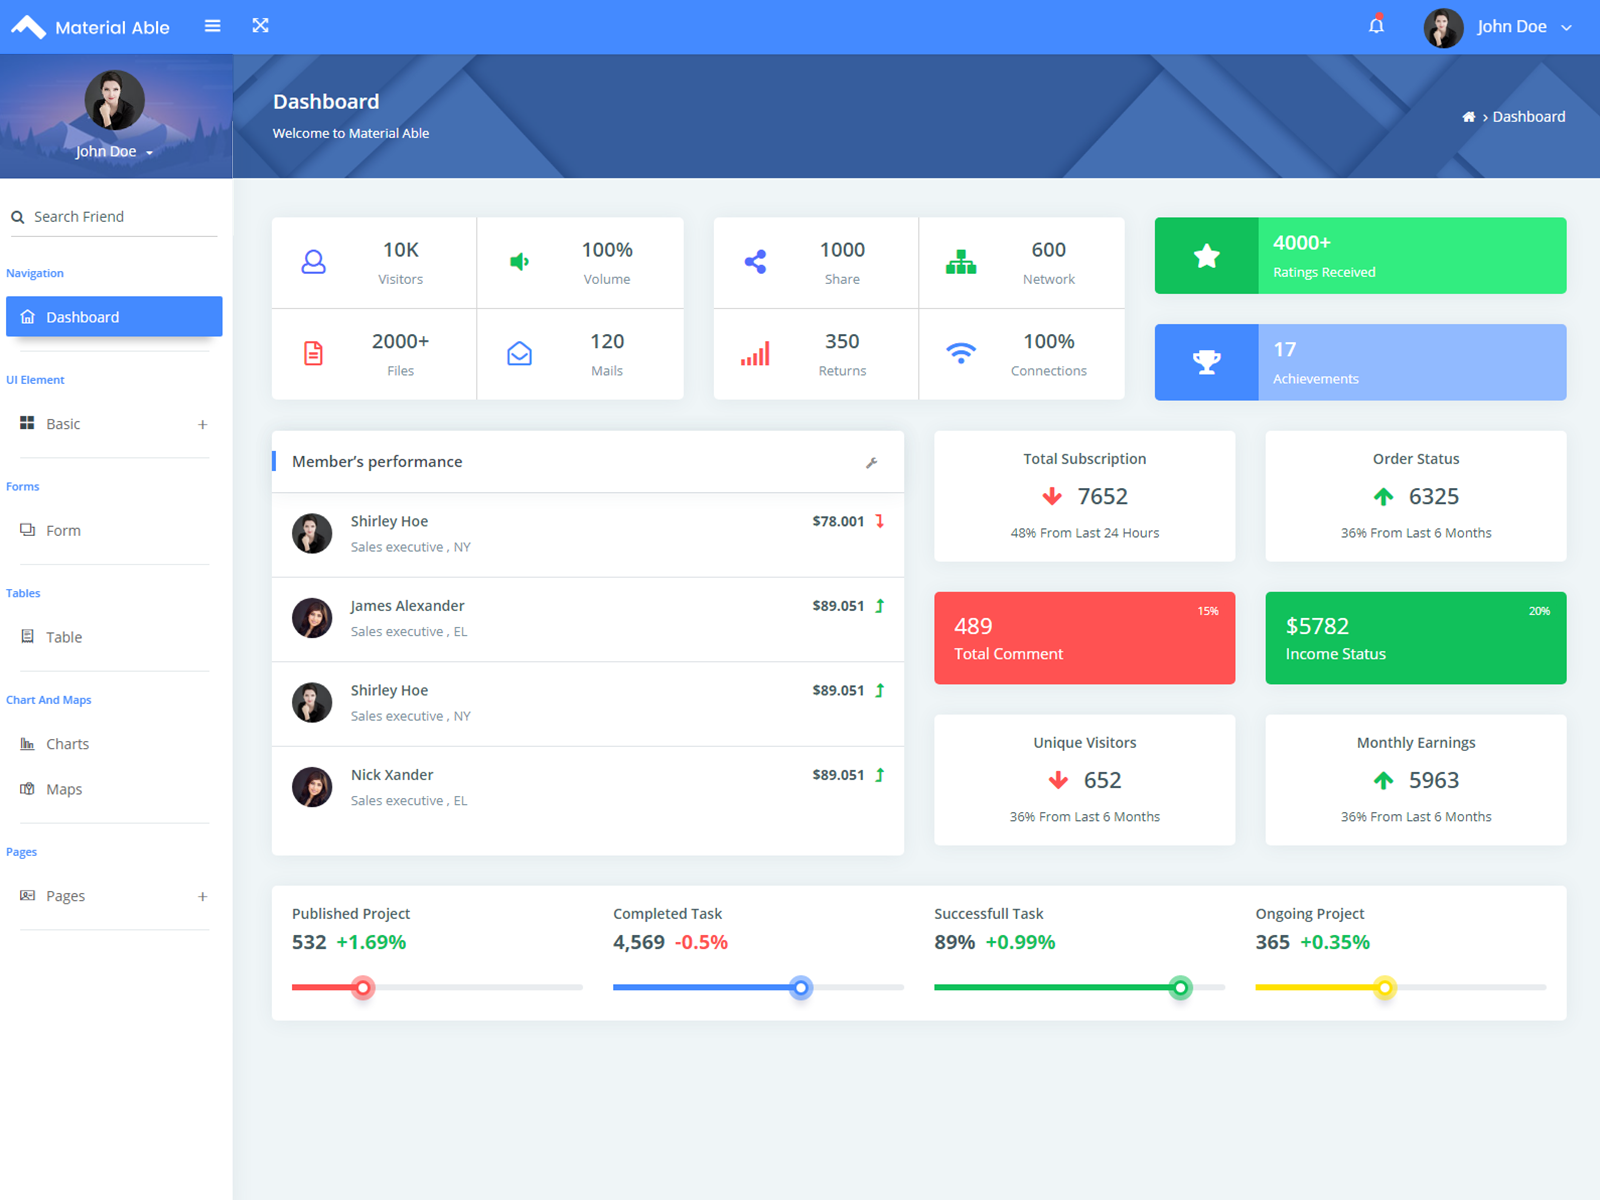 Material Able Bootstrap Admin Template cover image